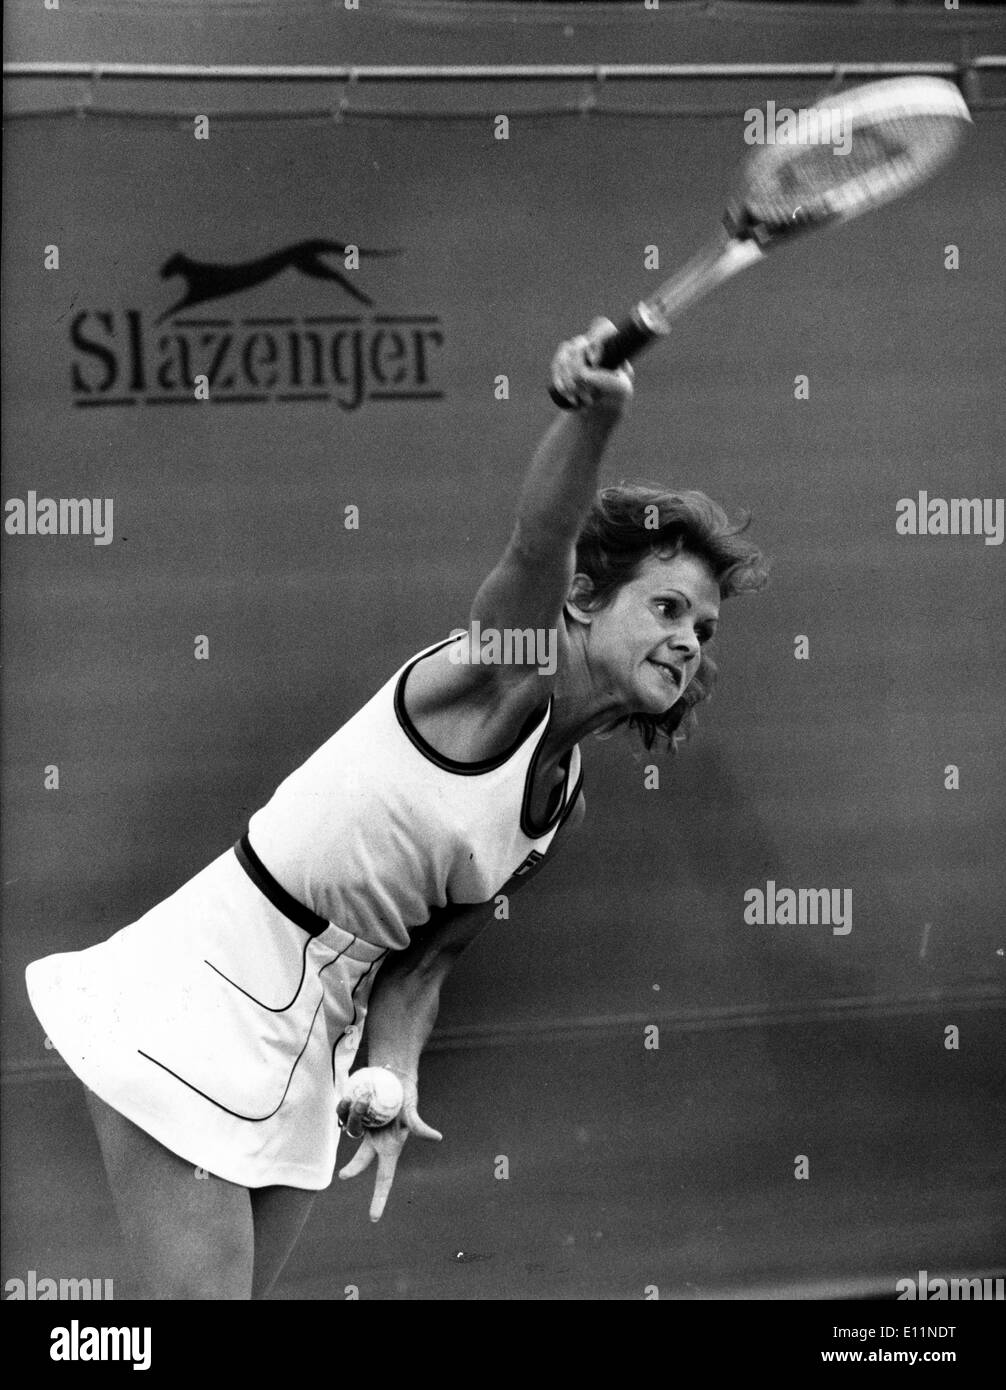 Tennis player Evonne Goolagong plays in match Stock Royalty